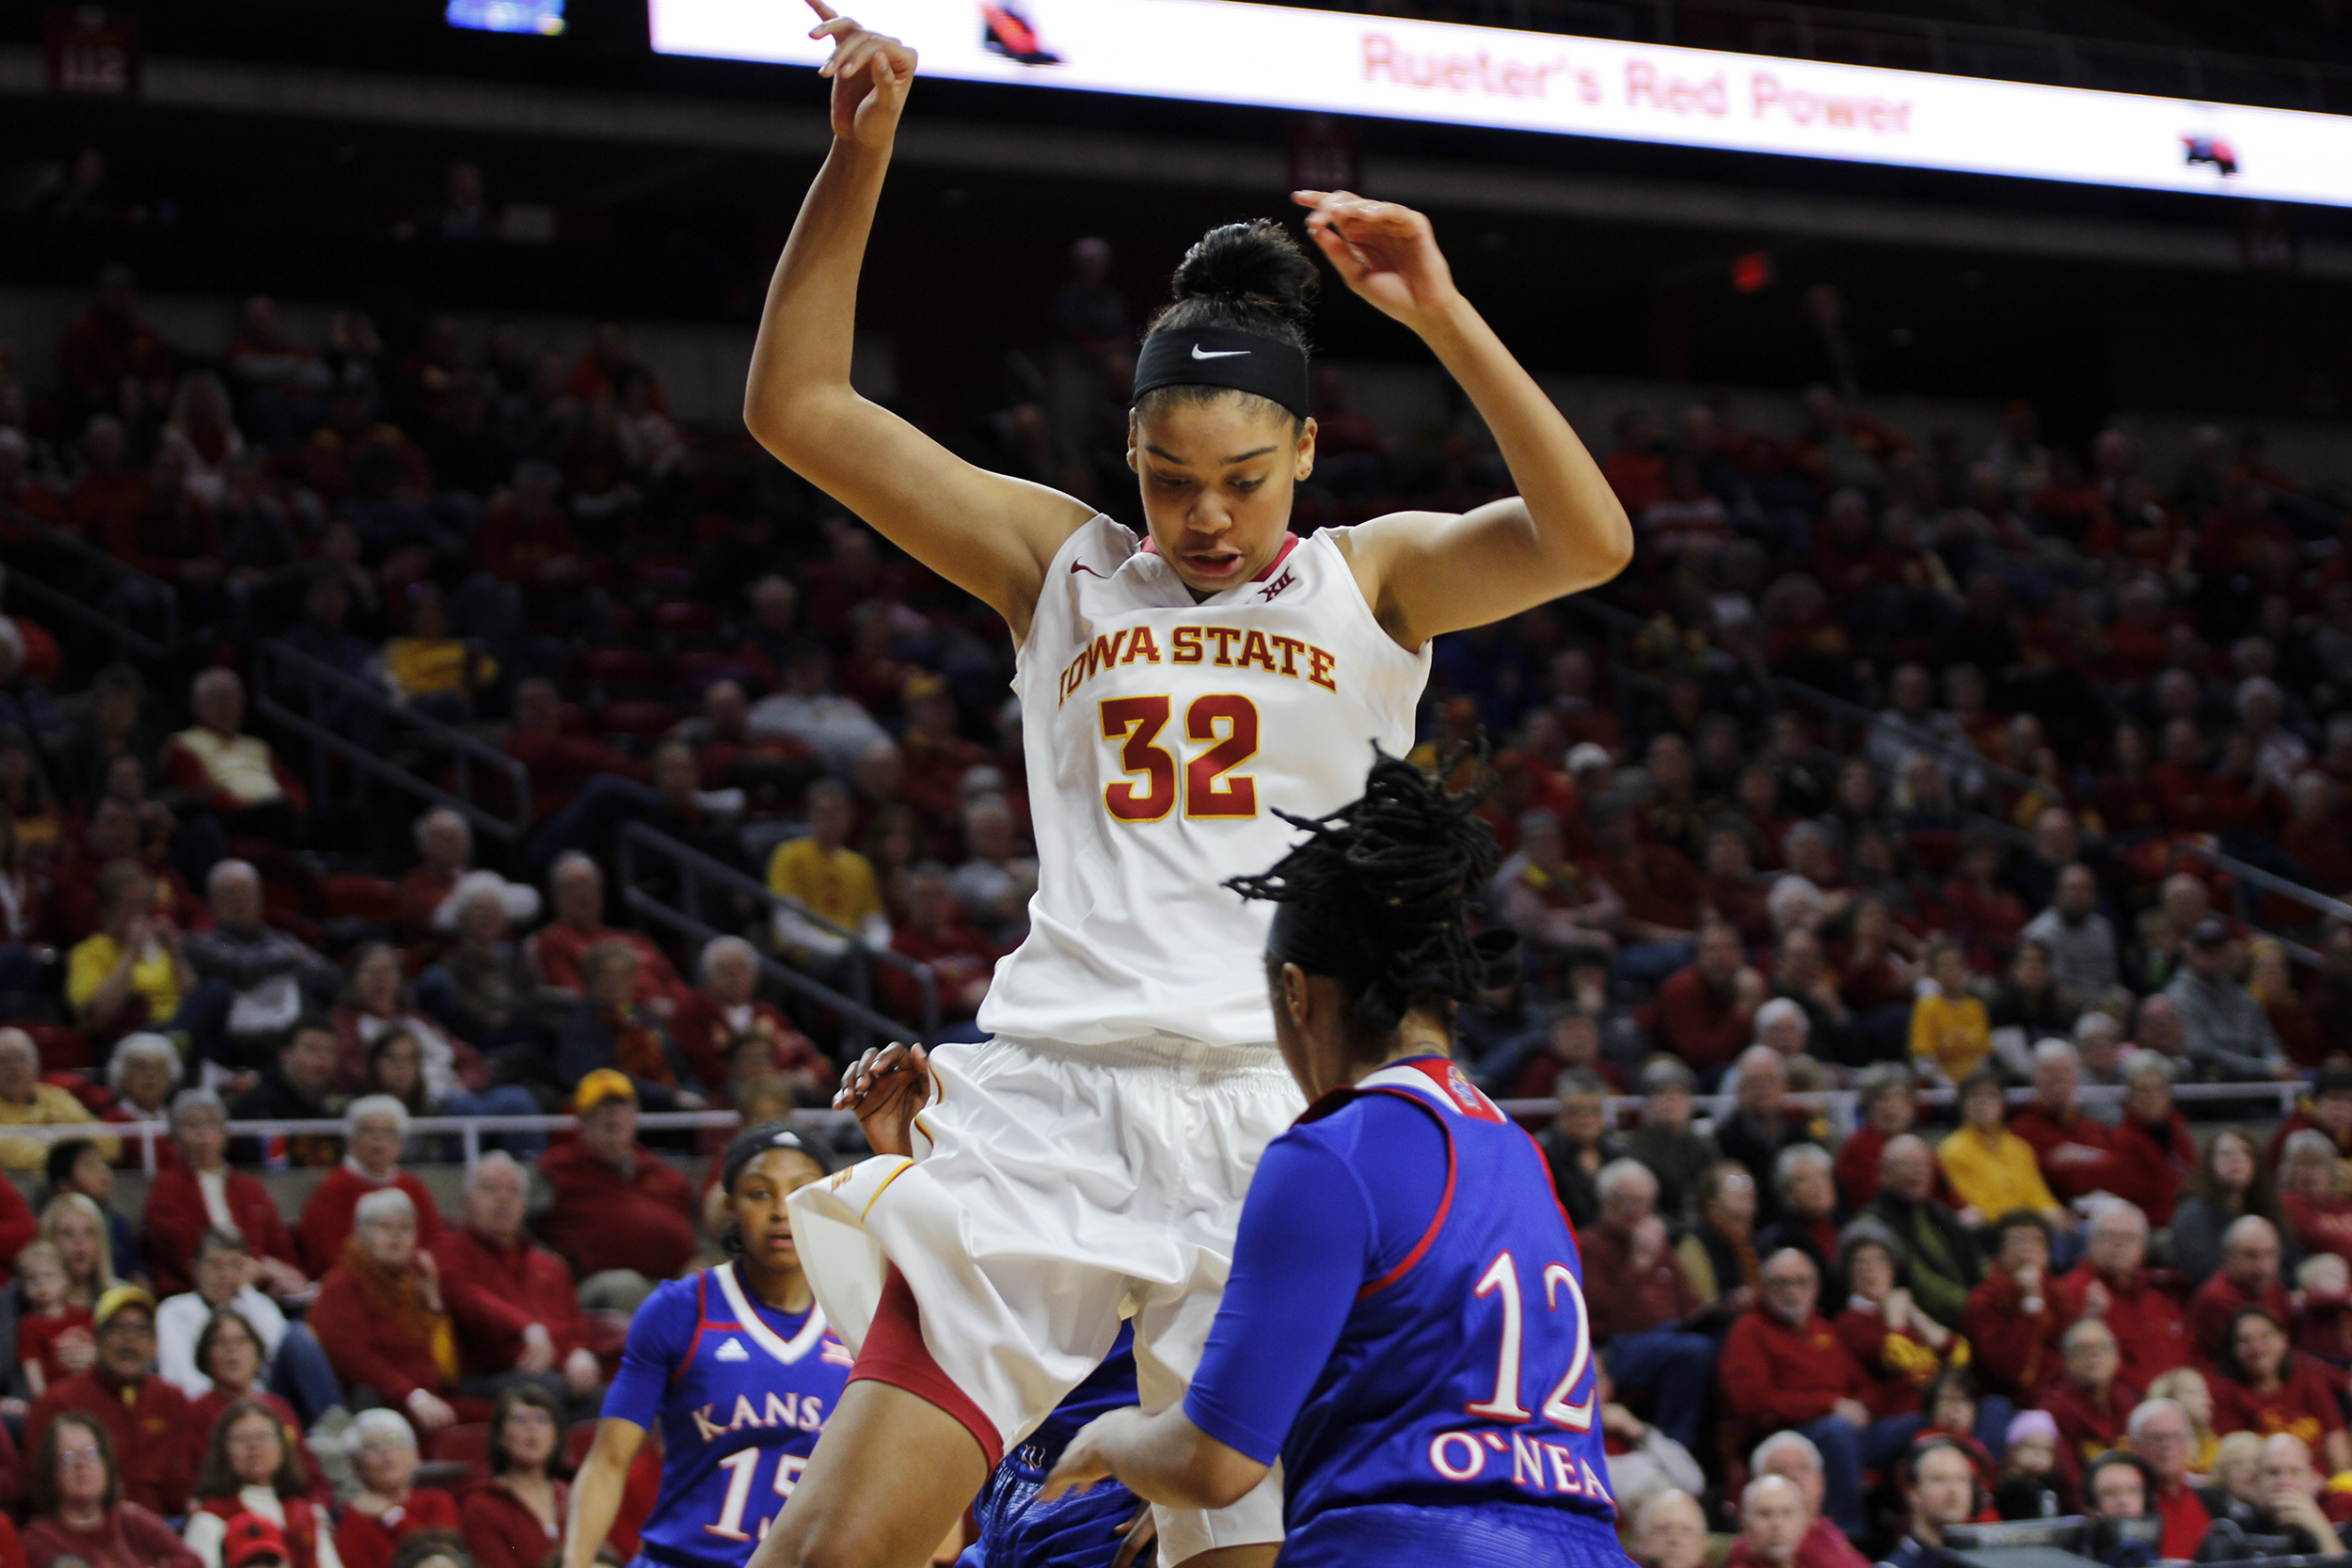 the latest 60fc5 4d87c Iowa State sophomore Meredith Burkhall has the ball poked out of her hands  as she goes up for a layup against Kansas in Hilton Coliseum on Jan. 8,  2017.